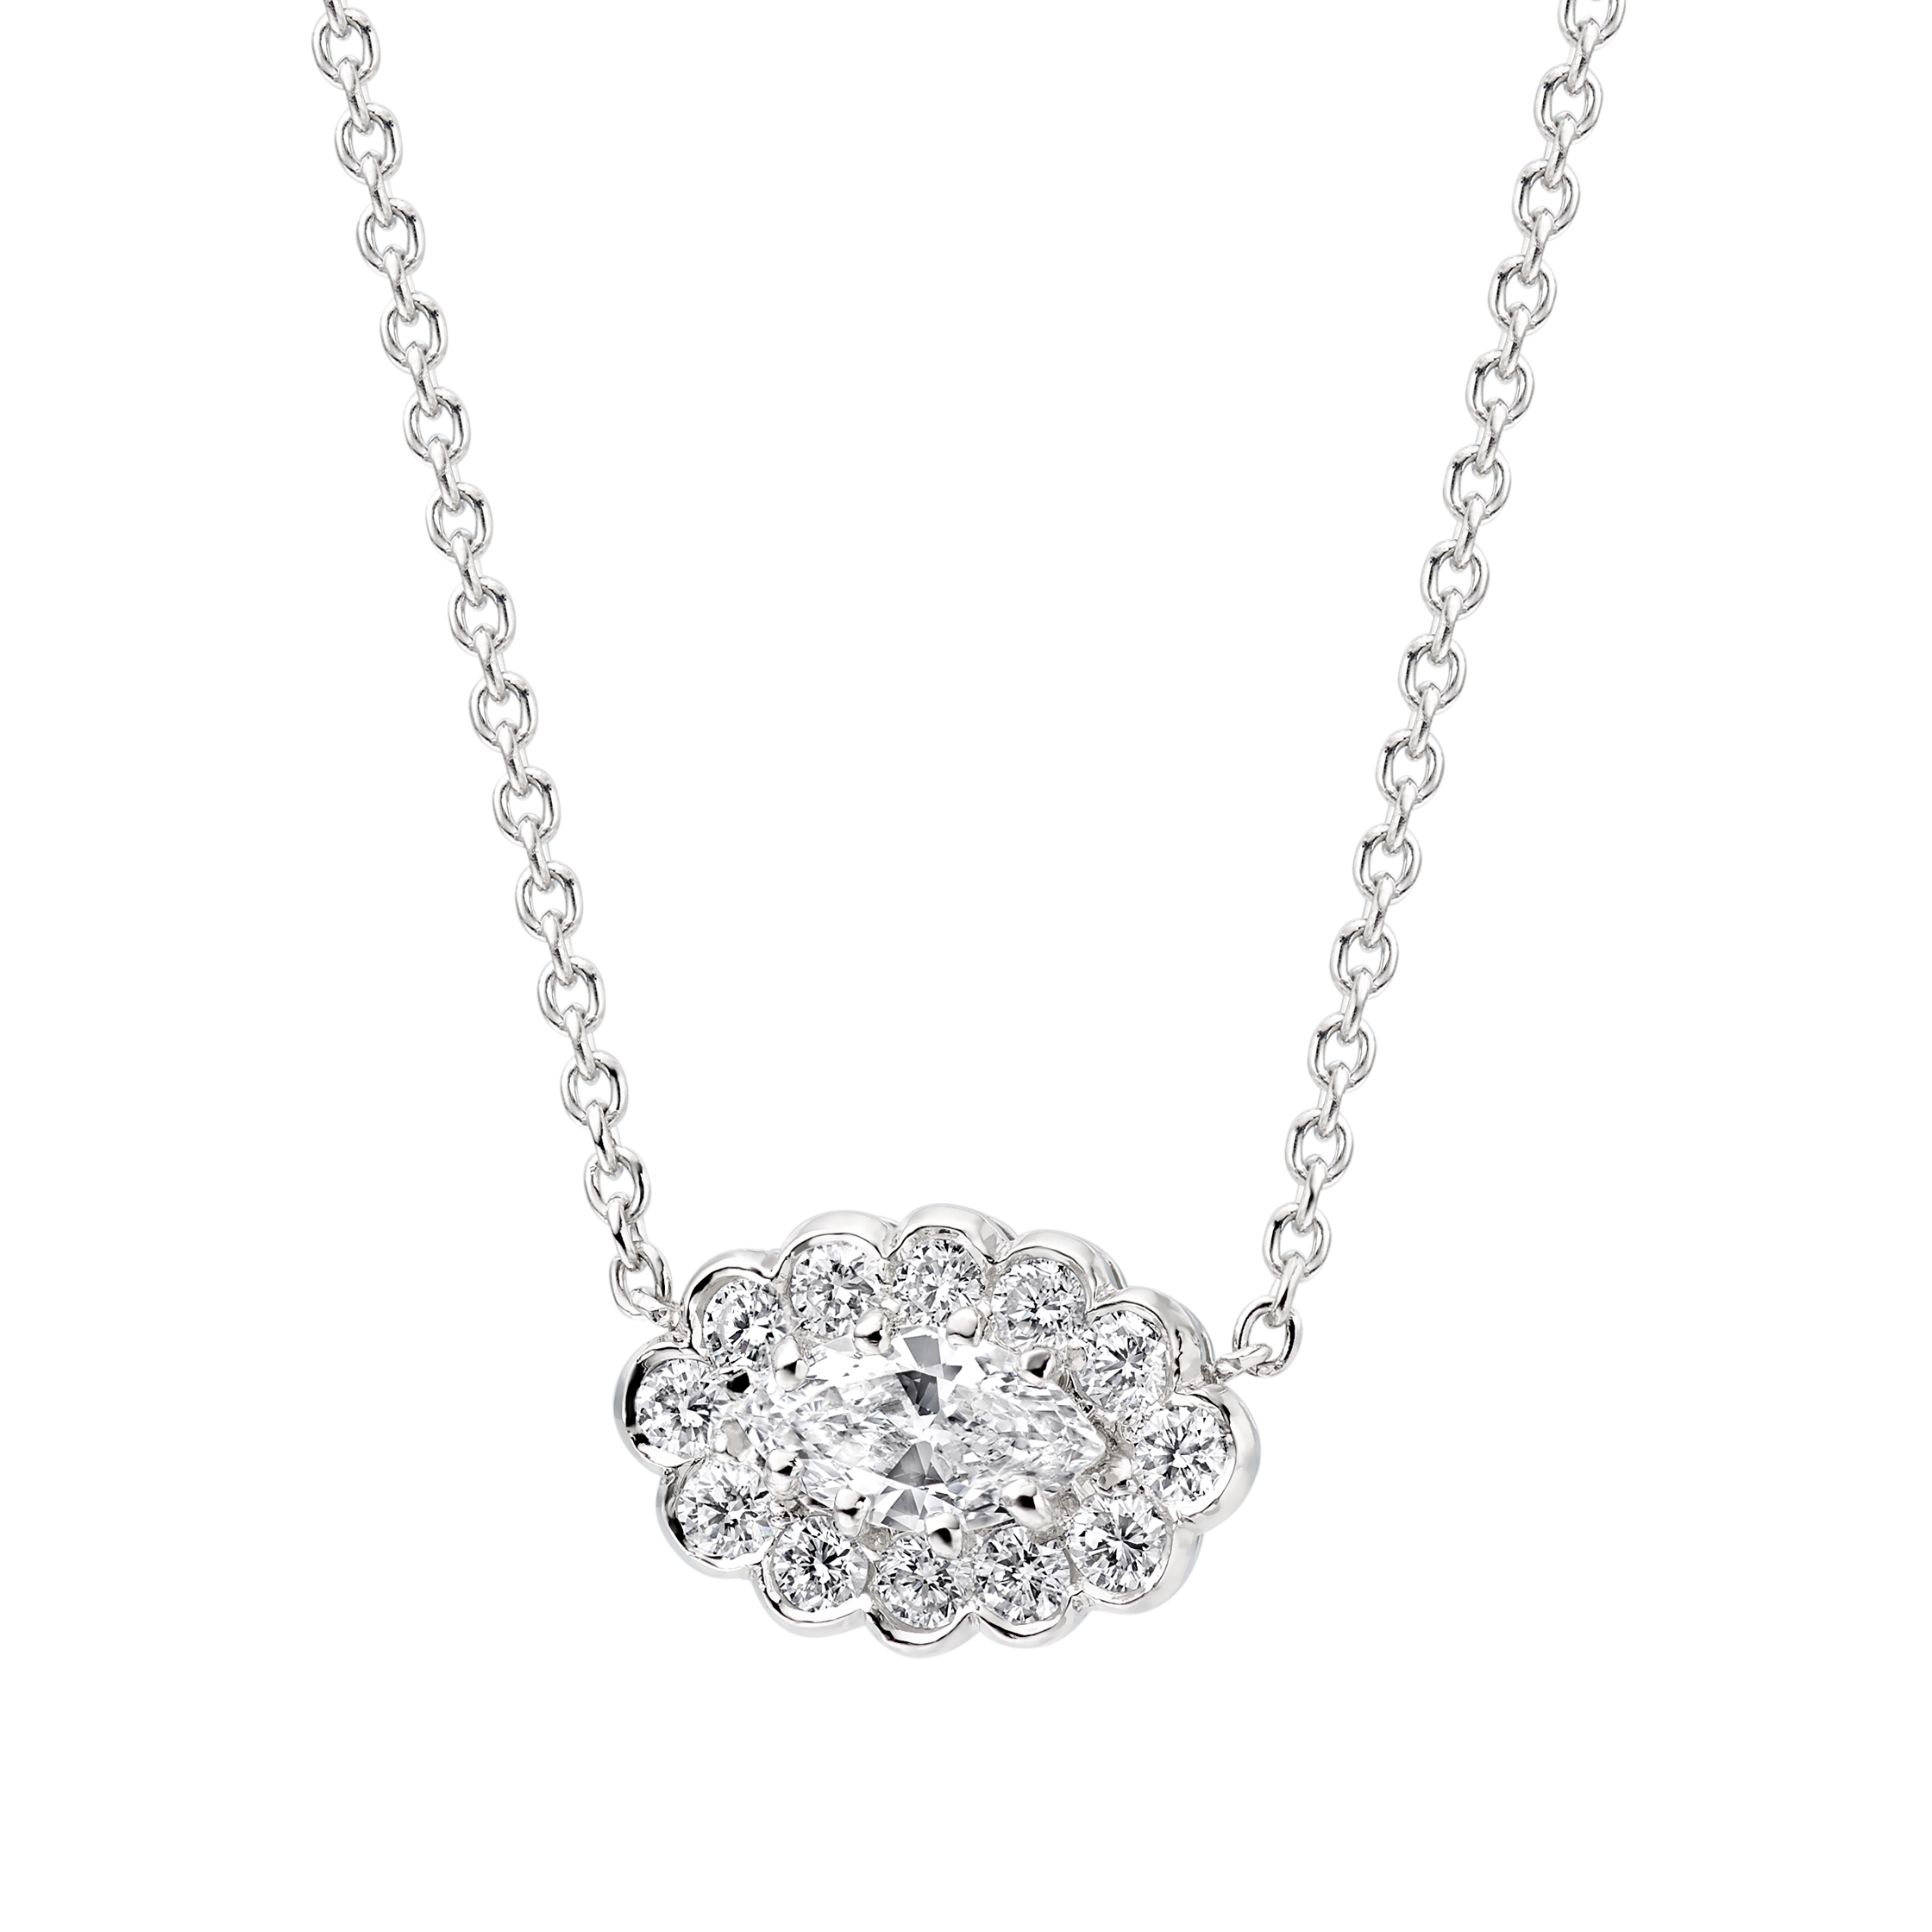 products jewelry necklace pendant spexton marquise custom textured diamond